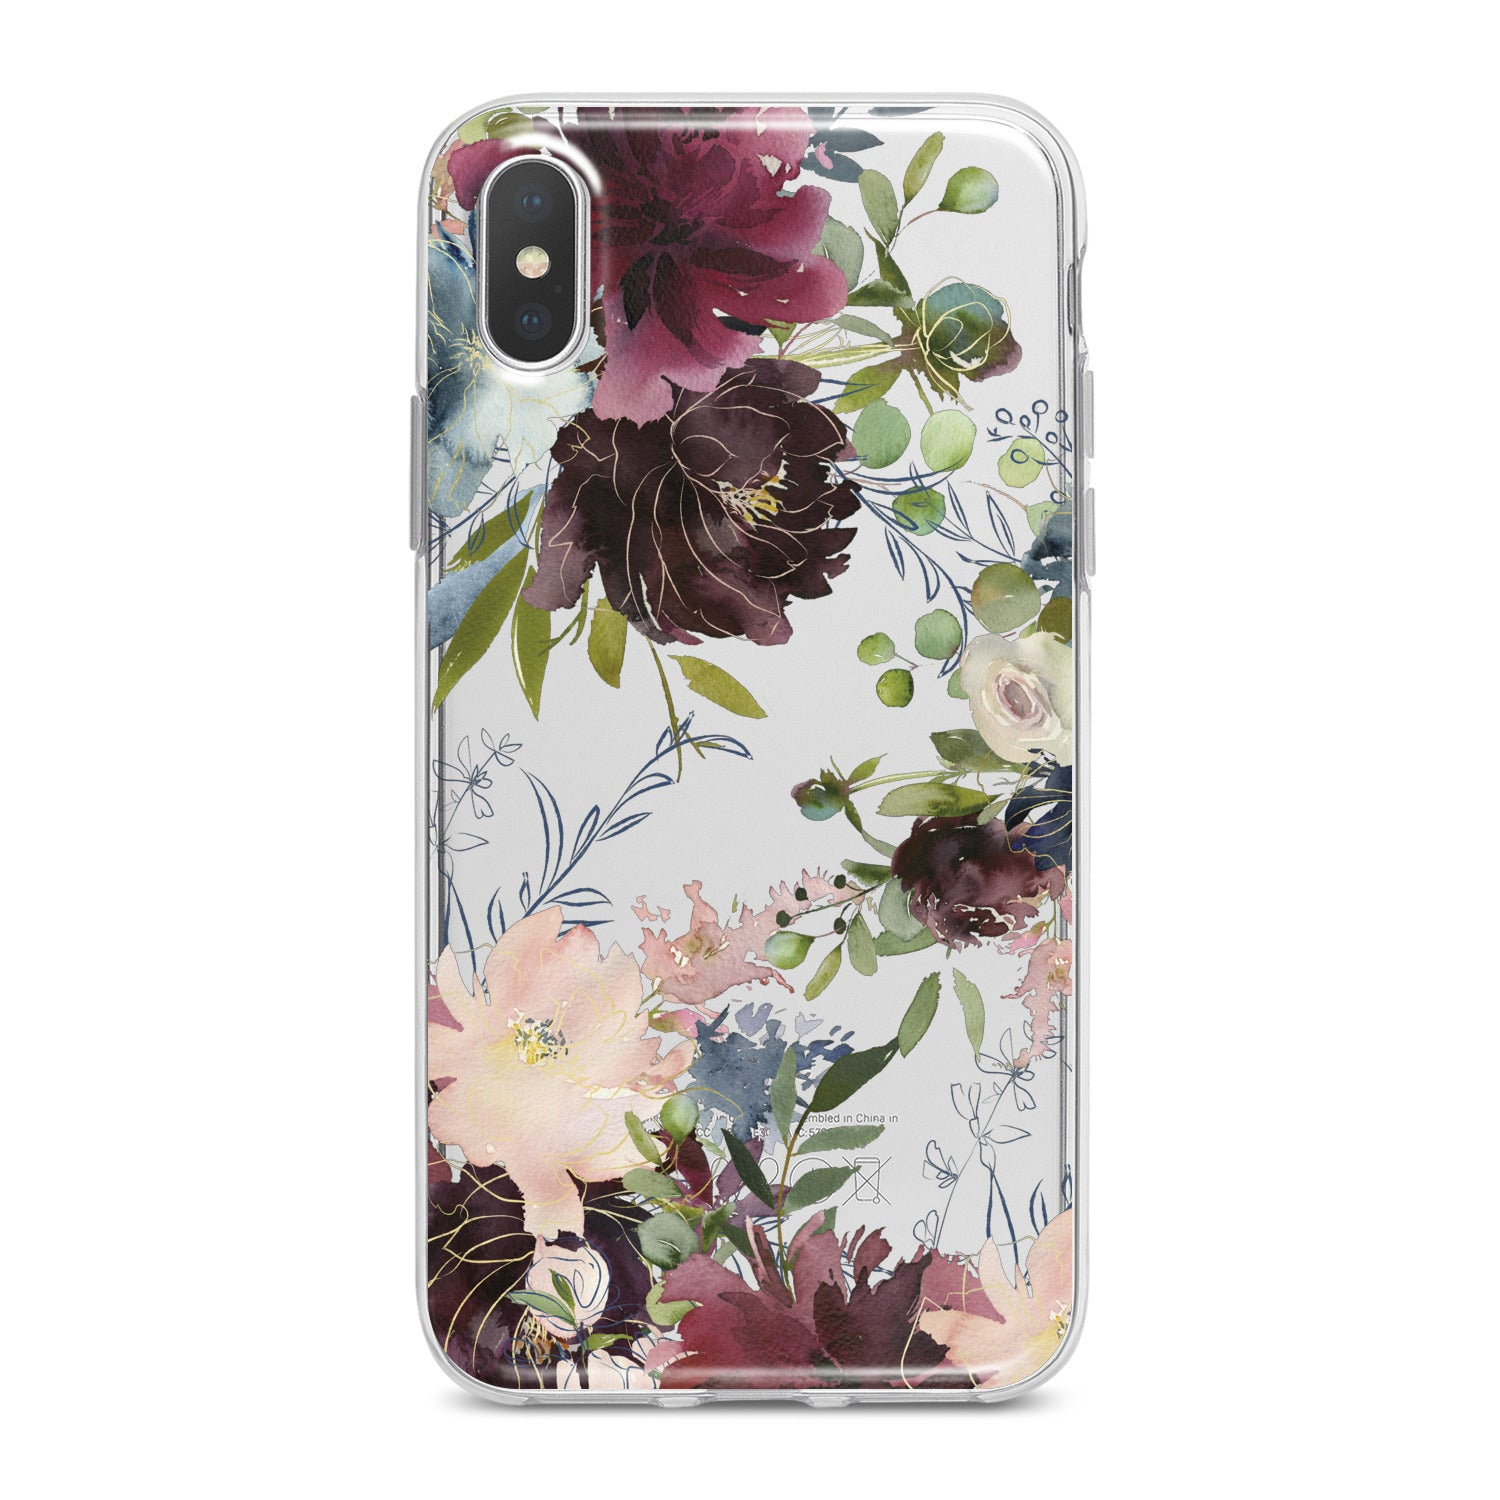 Lex Altern Purple Flowers Phone Case for your iPhone & Android phone.